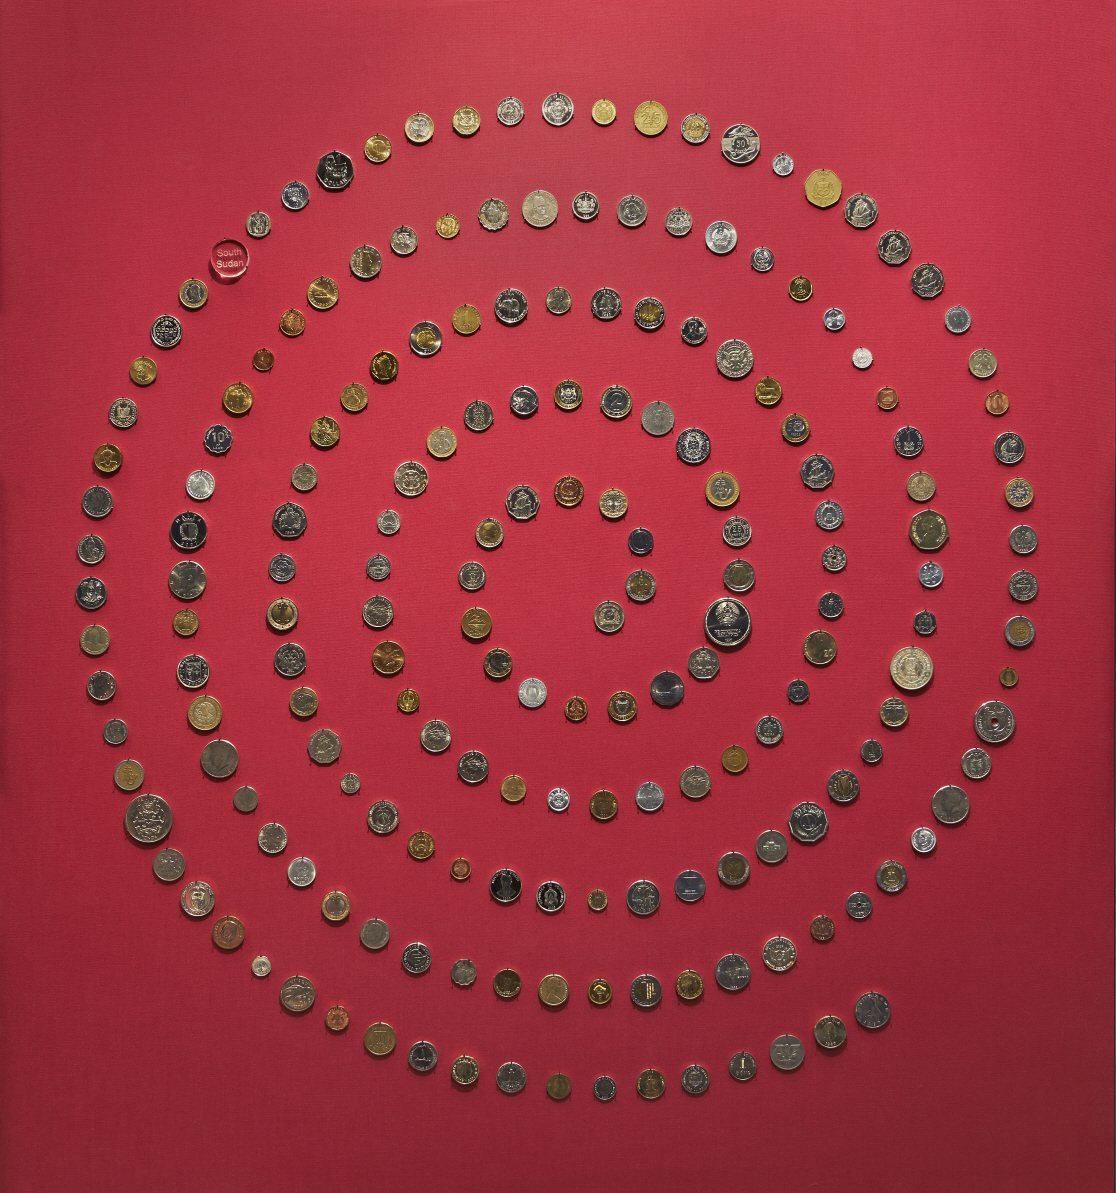 Coin spiral in Room 68.